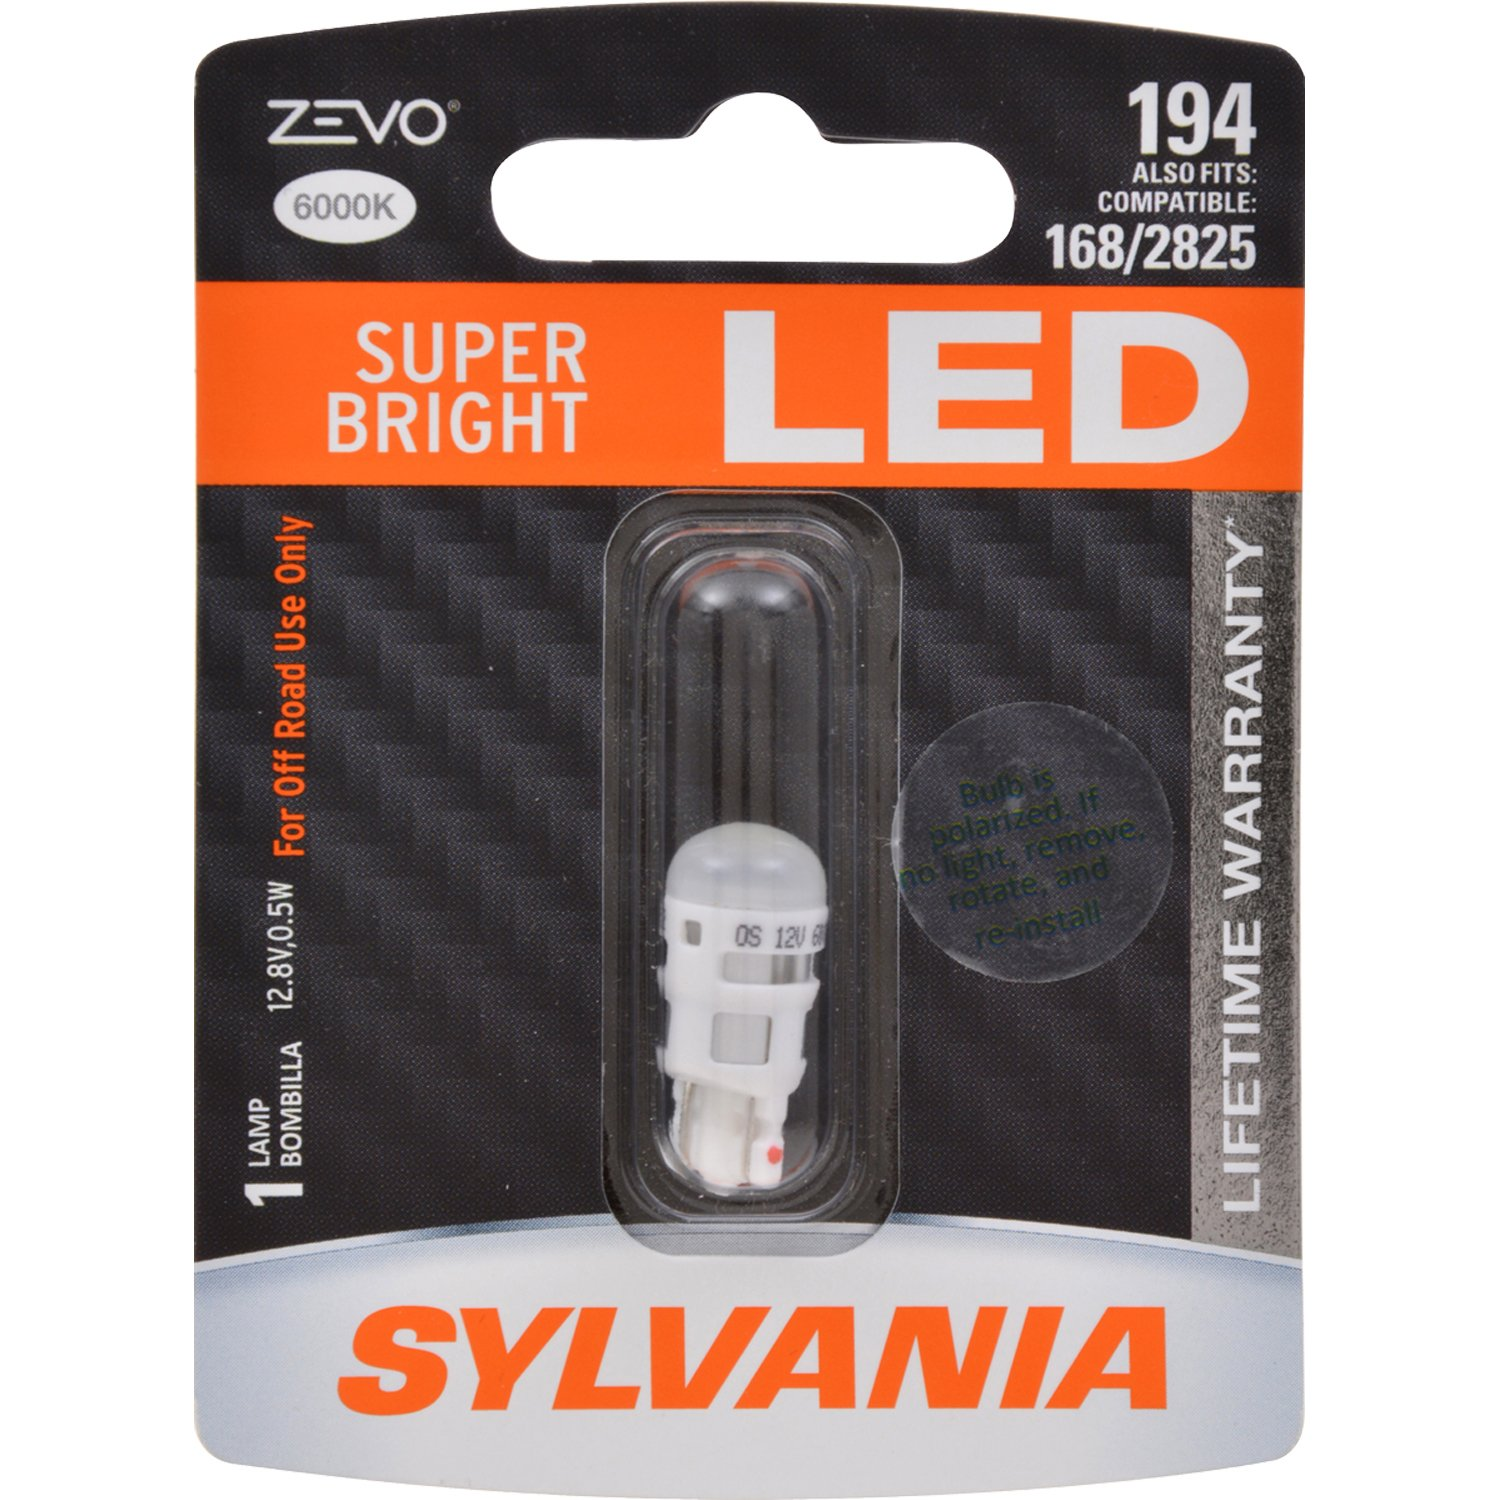 Amazon.com: SYLVANIA - 194 T10 W5W ZEVO LED White Bulb - Bright LED Bulb,  Ideal fo Interior Lighting - Map, Dome, Trunk, Cargo and License Plate  (Contains 1 ...